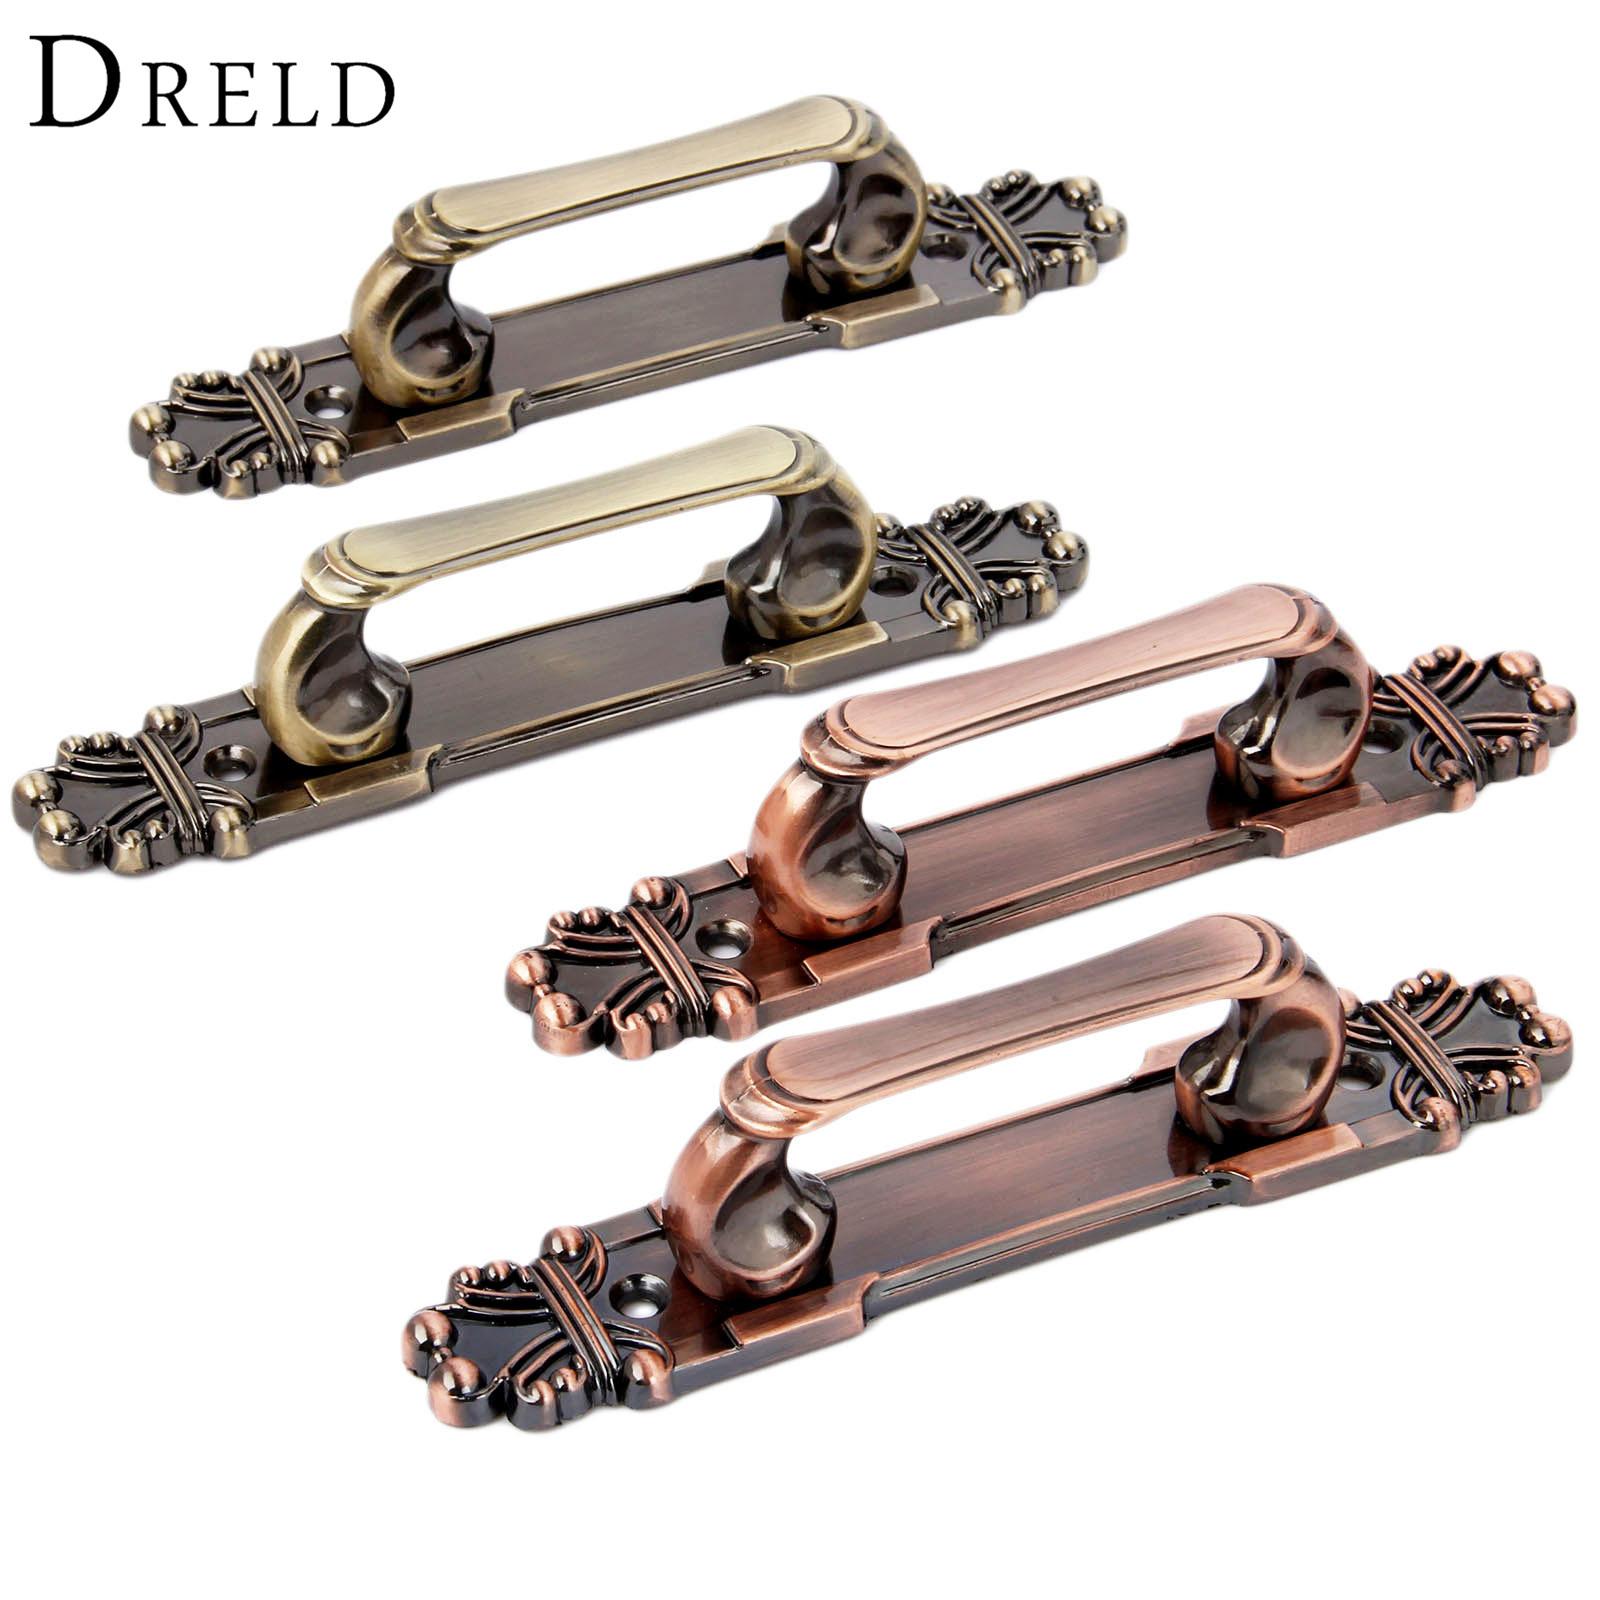 DRELD 2Pcs Antique Furniture Handles Zinc Alloy Door Pull Handle Vintage Drawer Cabinet Knobs and Handles Kitchen Furniture Knob